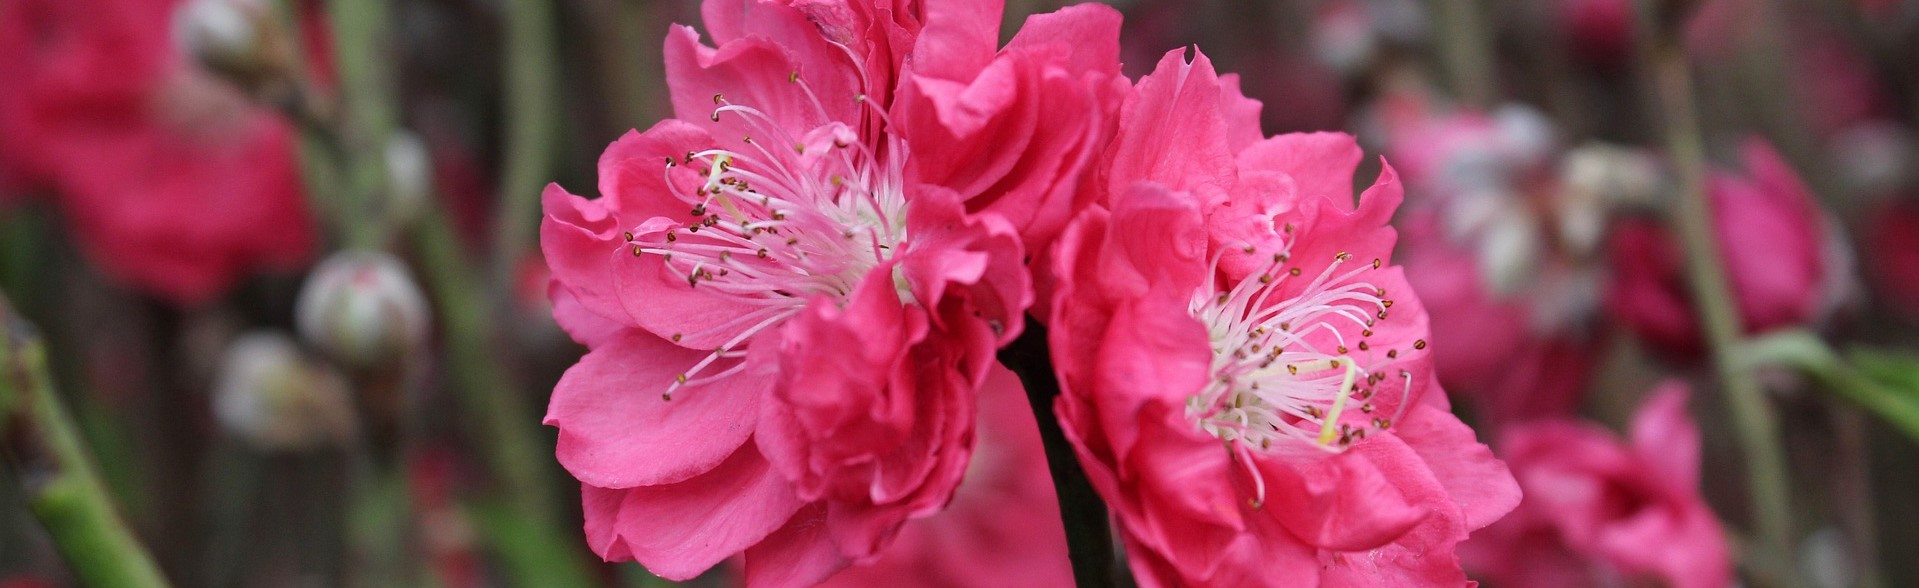 Cherry Blossoms on the Spring Festival | Breast Cancer Car Donations